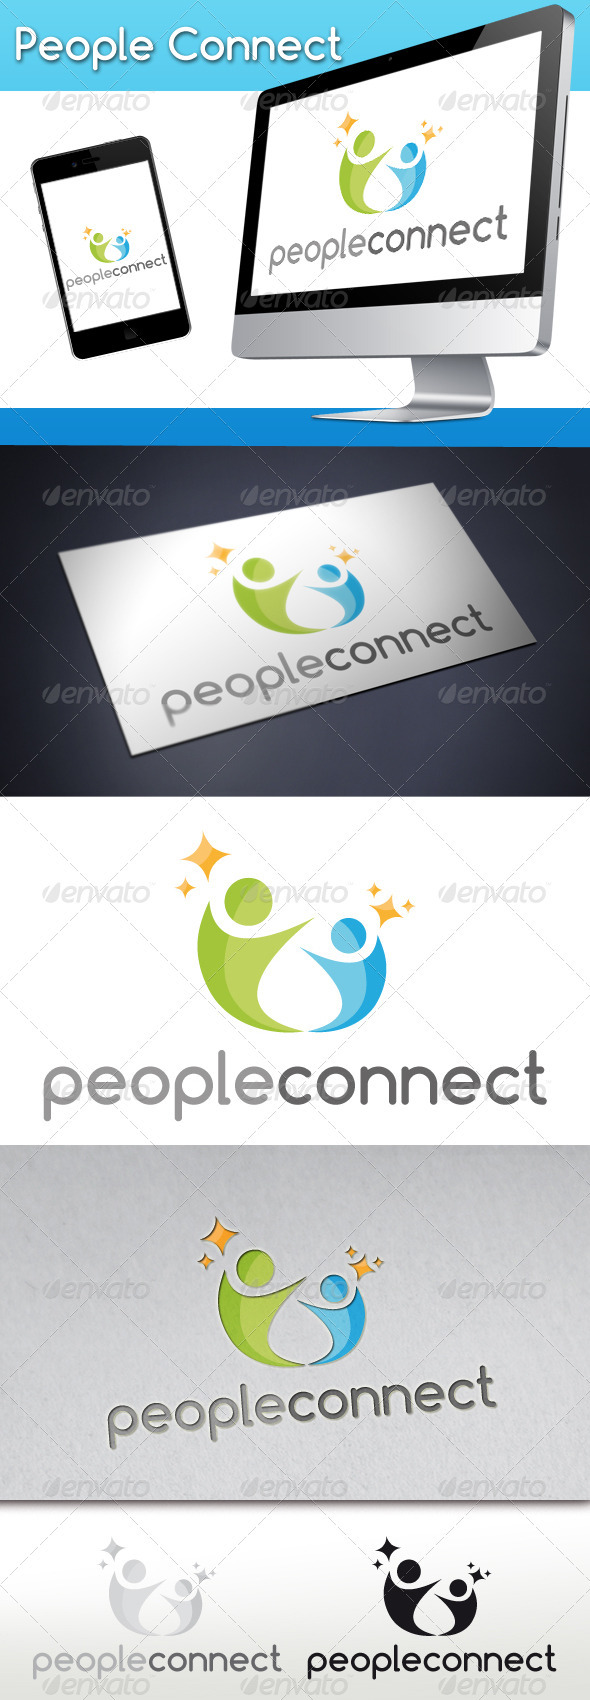 People Connect Logo 1